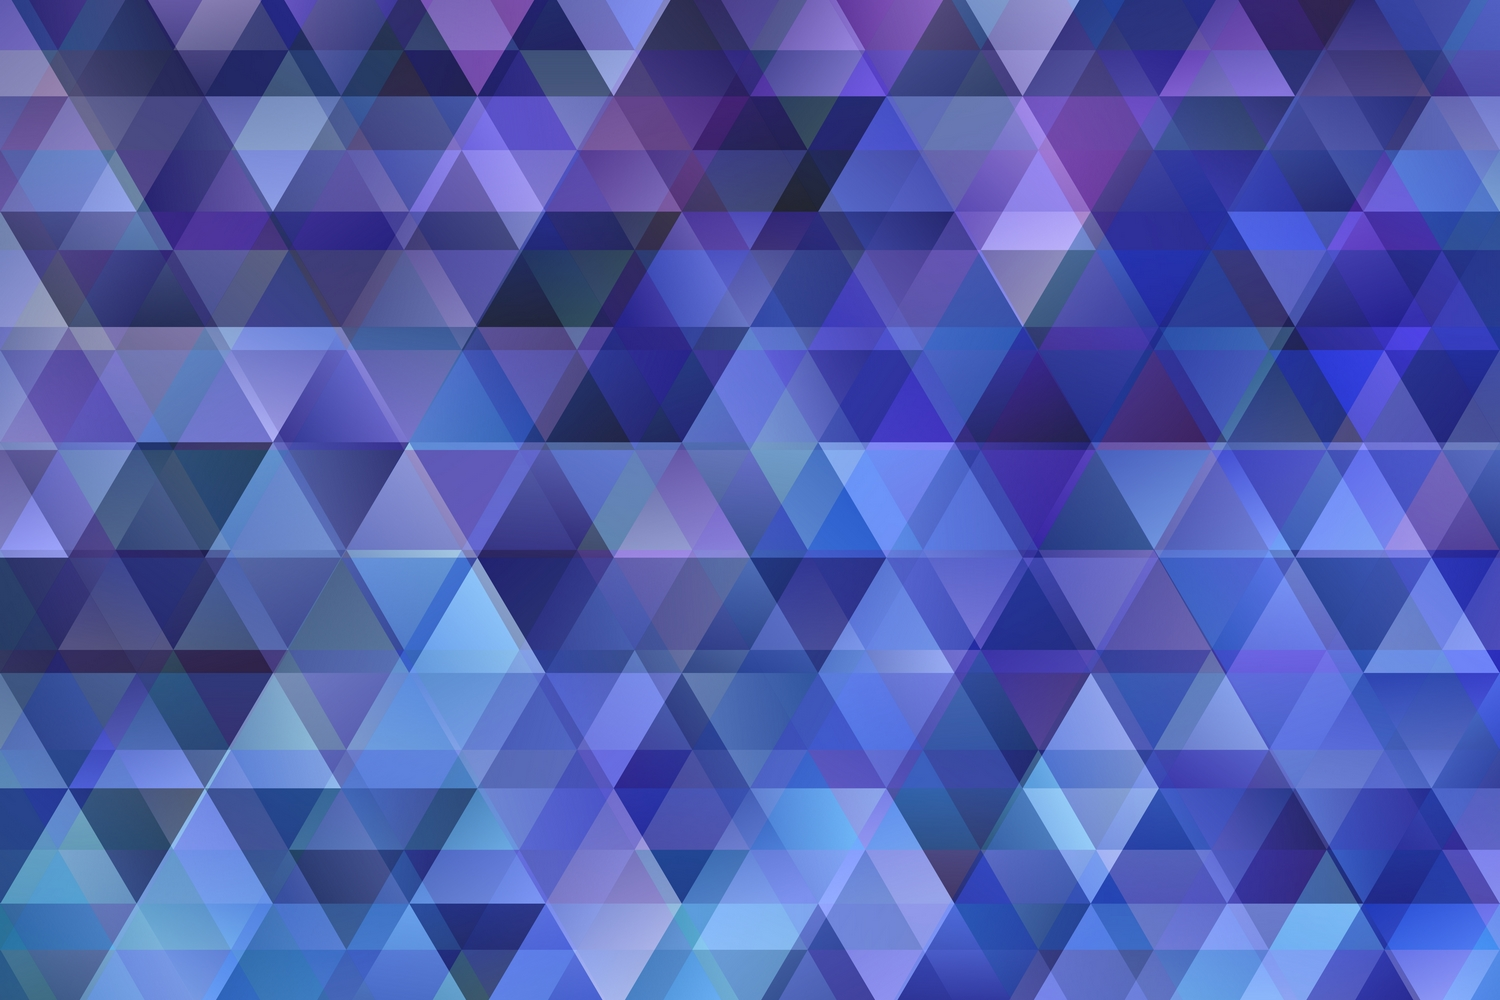 24 Gradient Polygon Backgrounds AI, EPS, JPG 5000x5000 example image 11